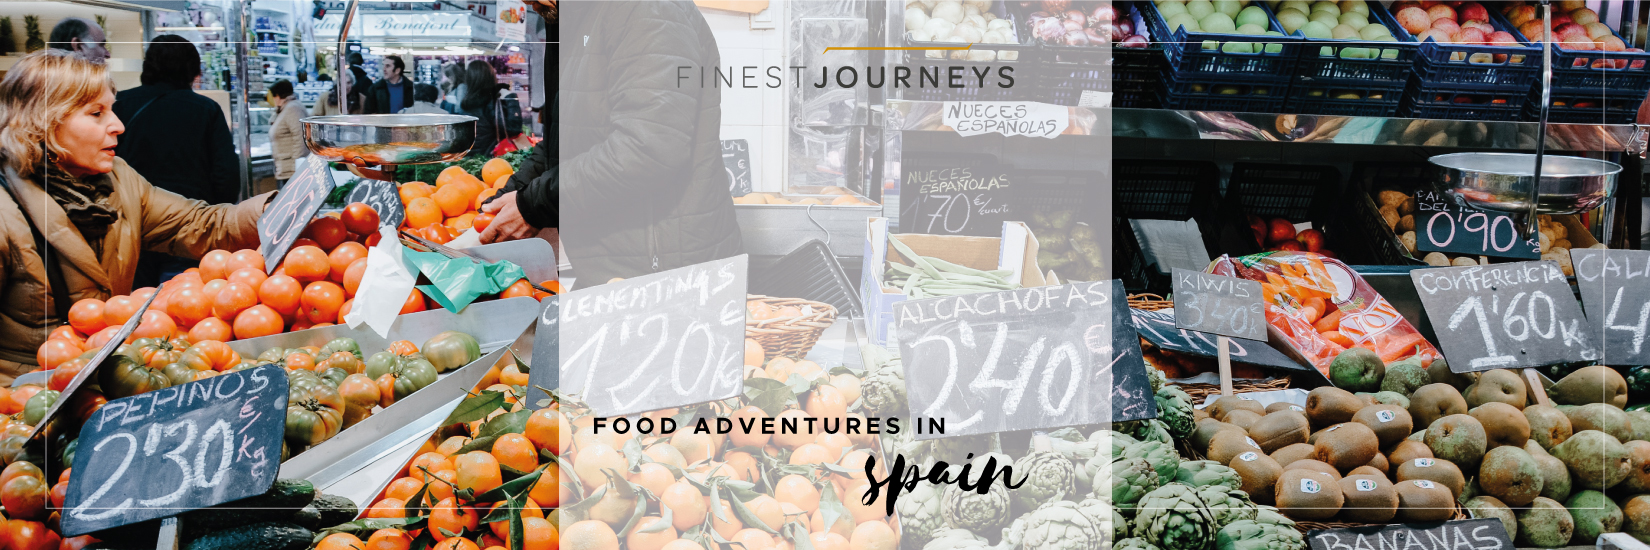 IMG : Food Adventures in Spain